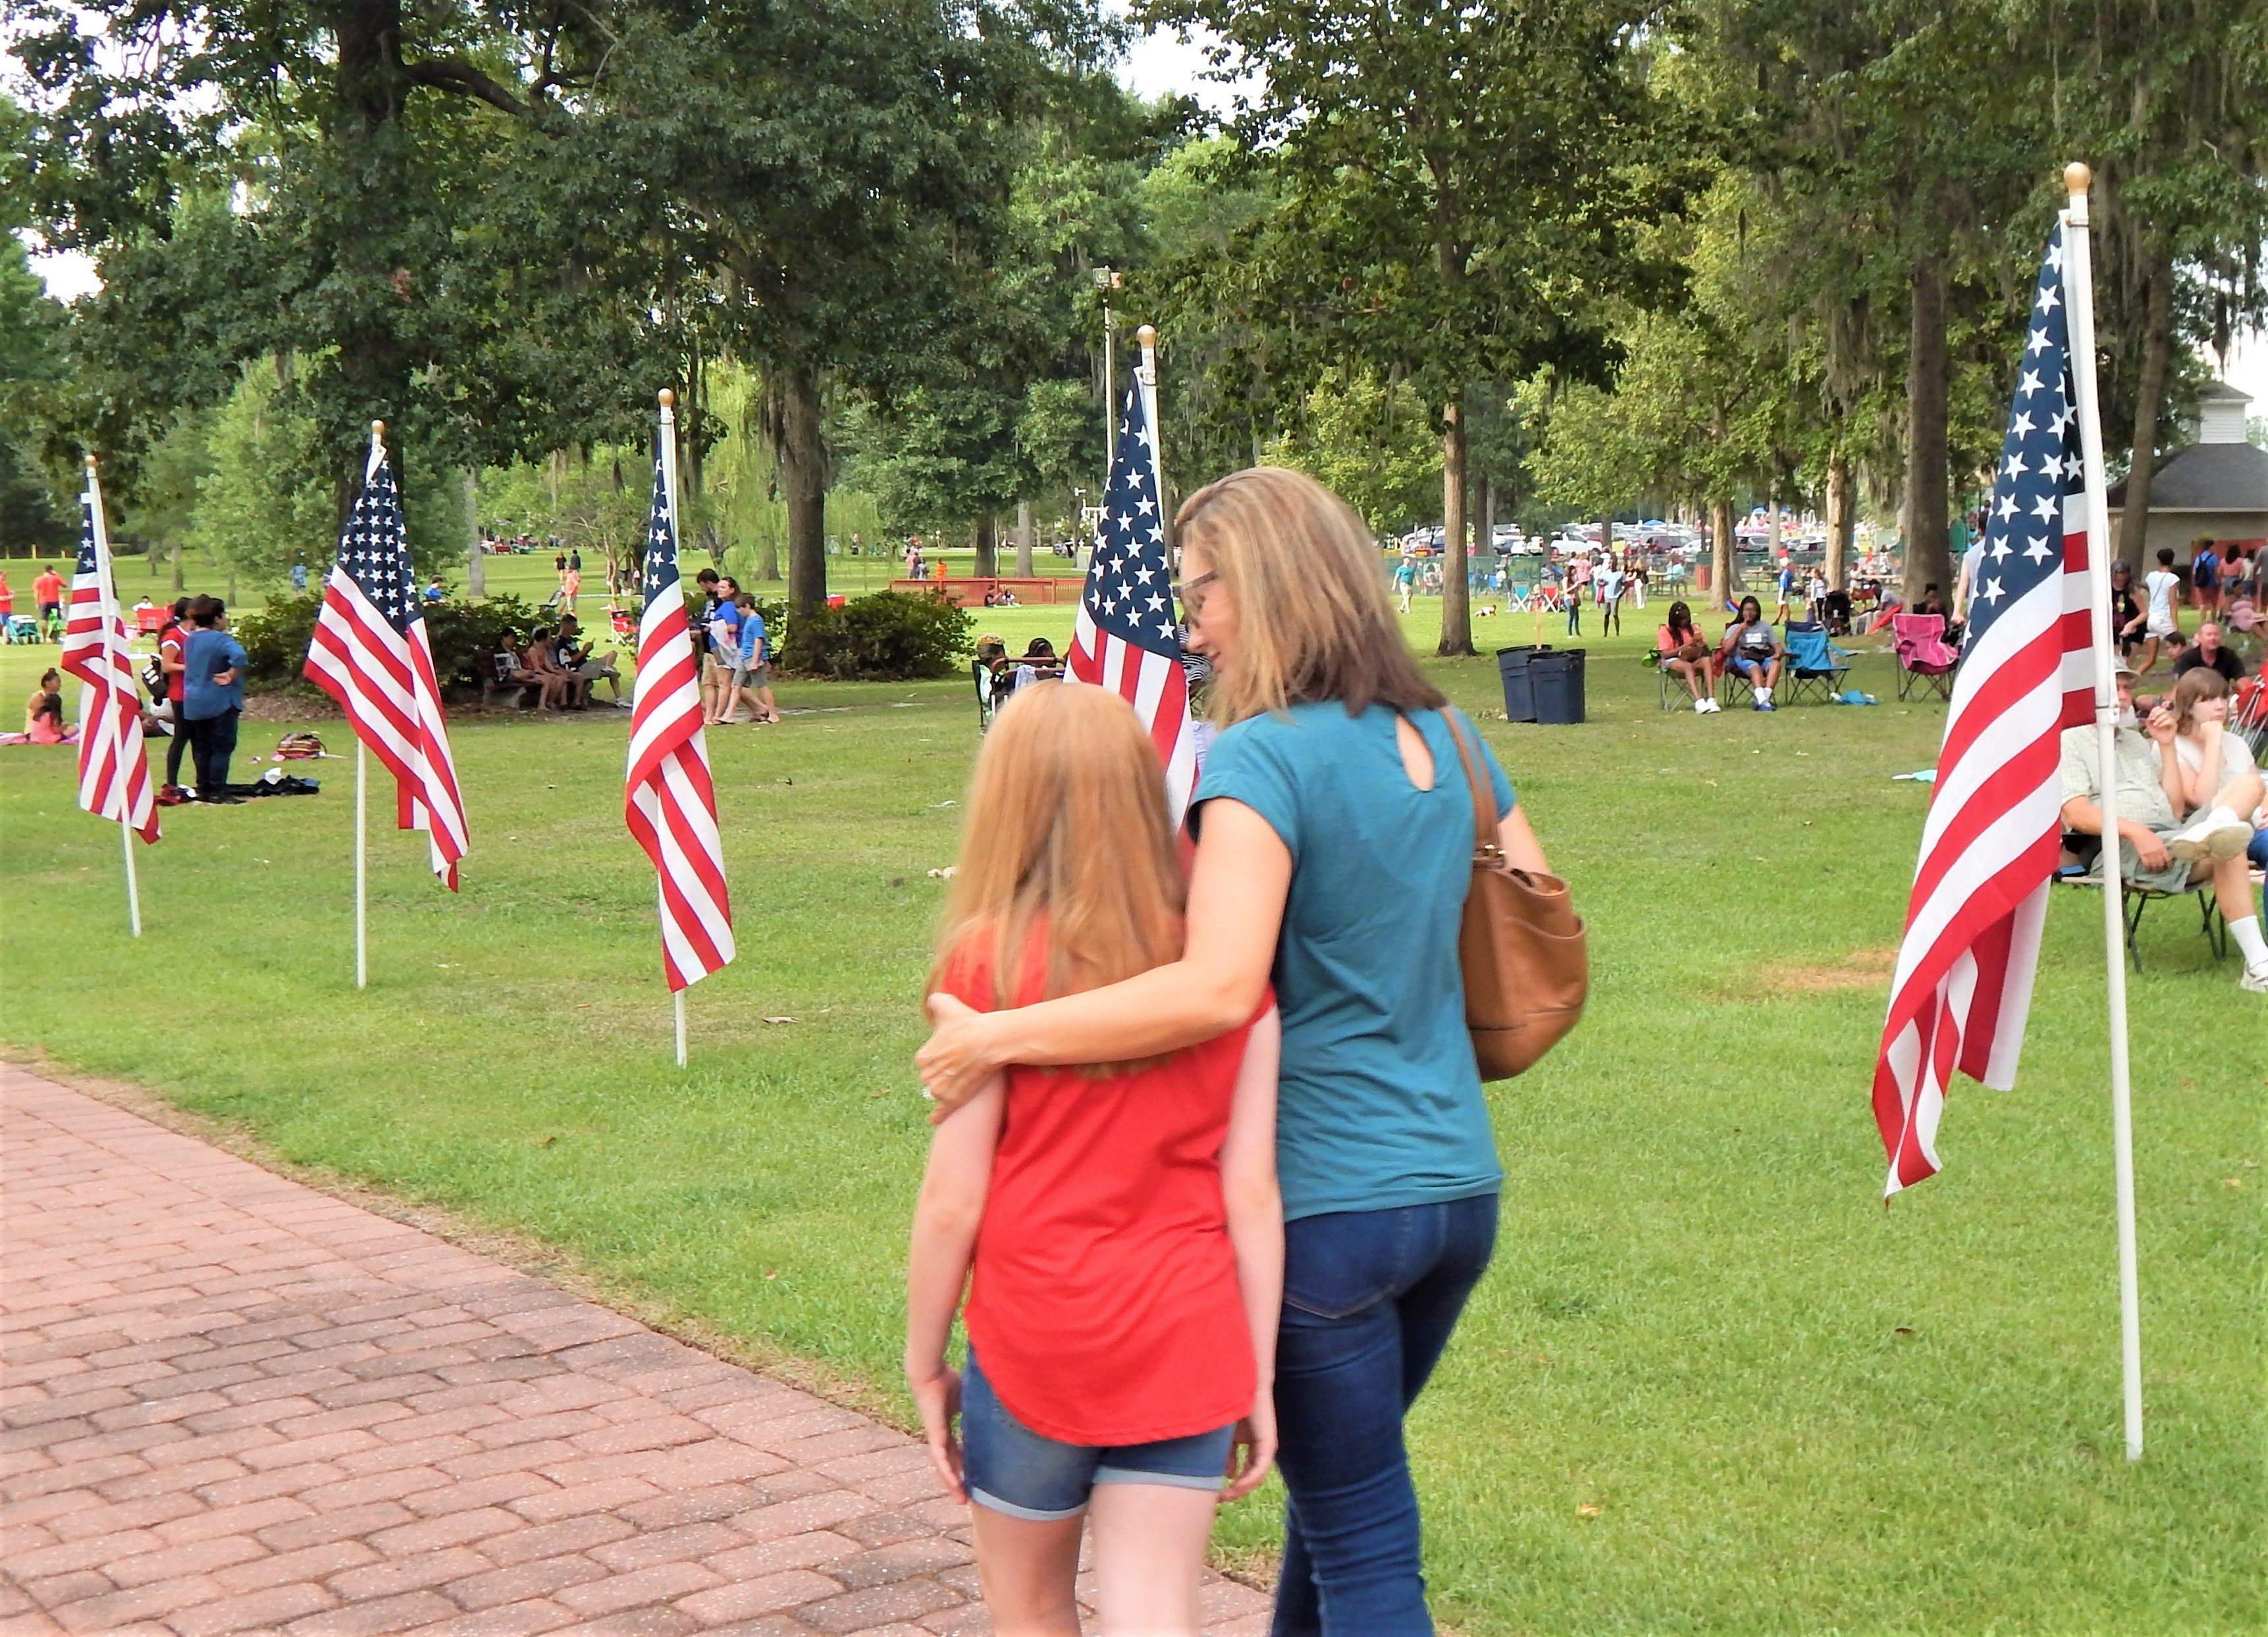 A pathway of flags got everyone into the patriotic spirit. Photo by Mark Swendra.